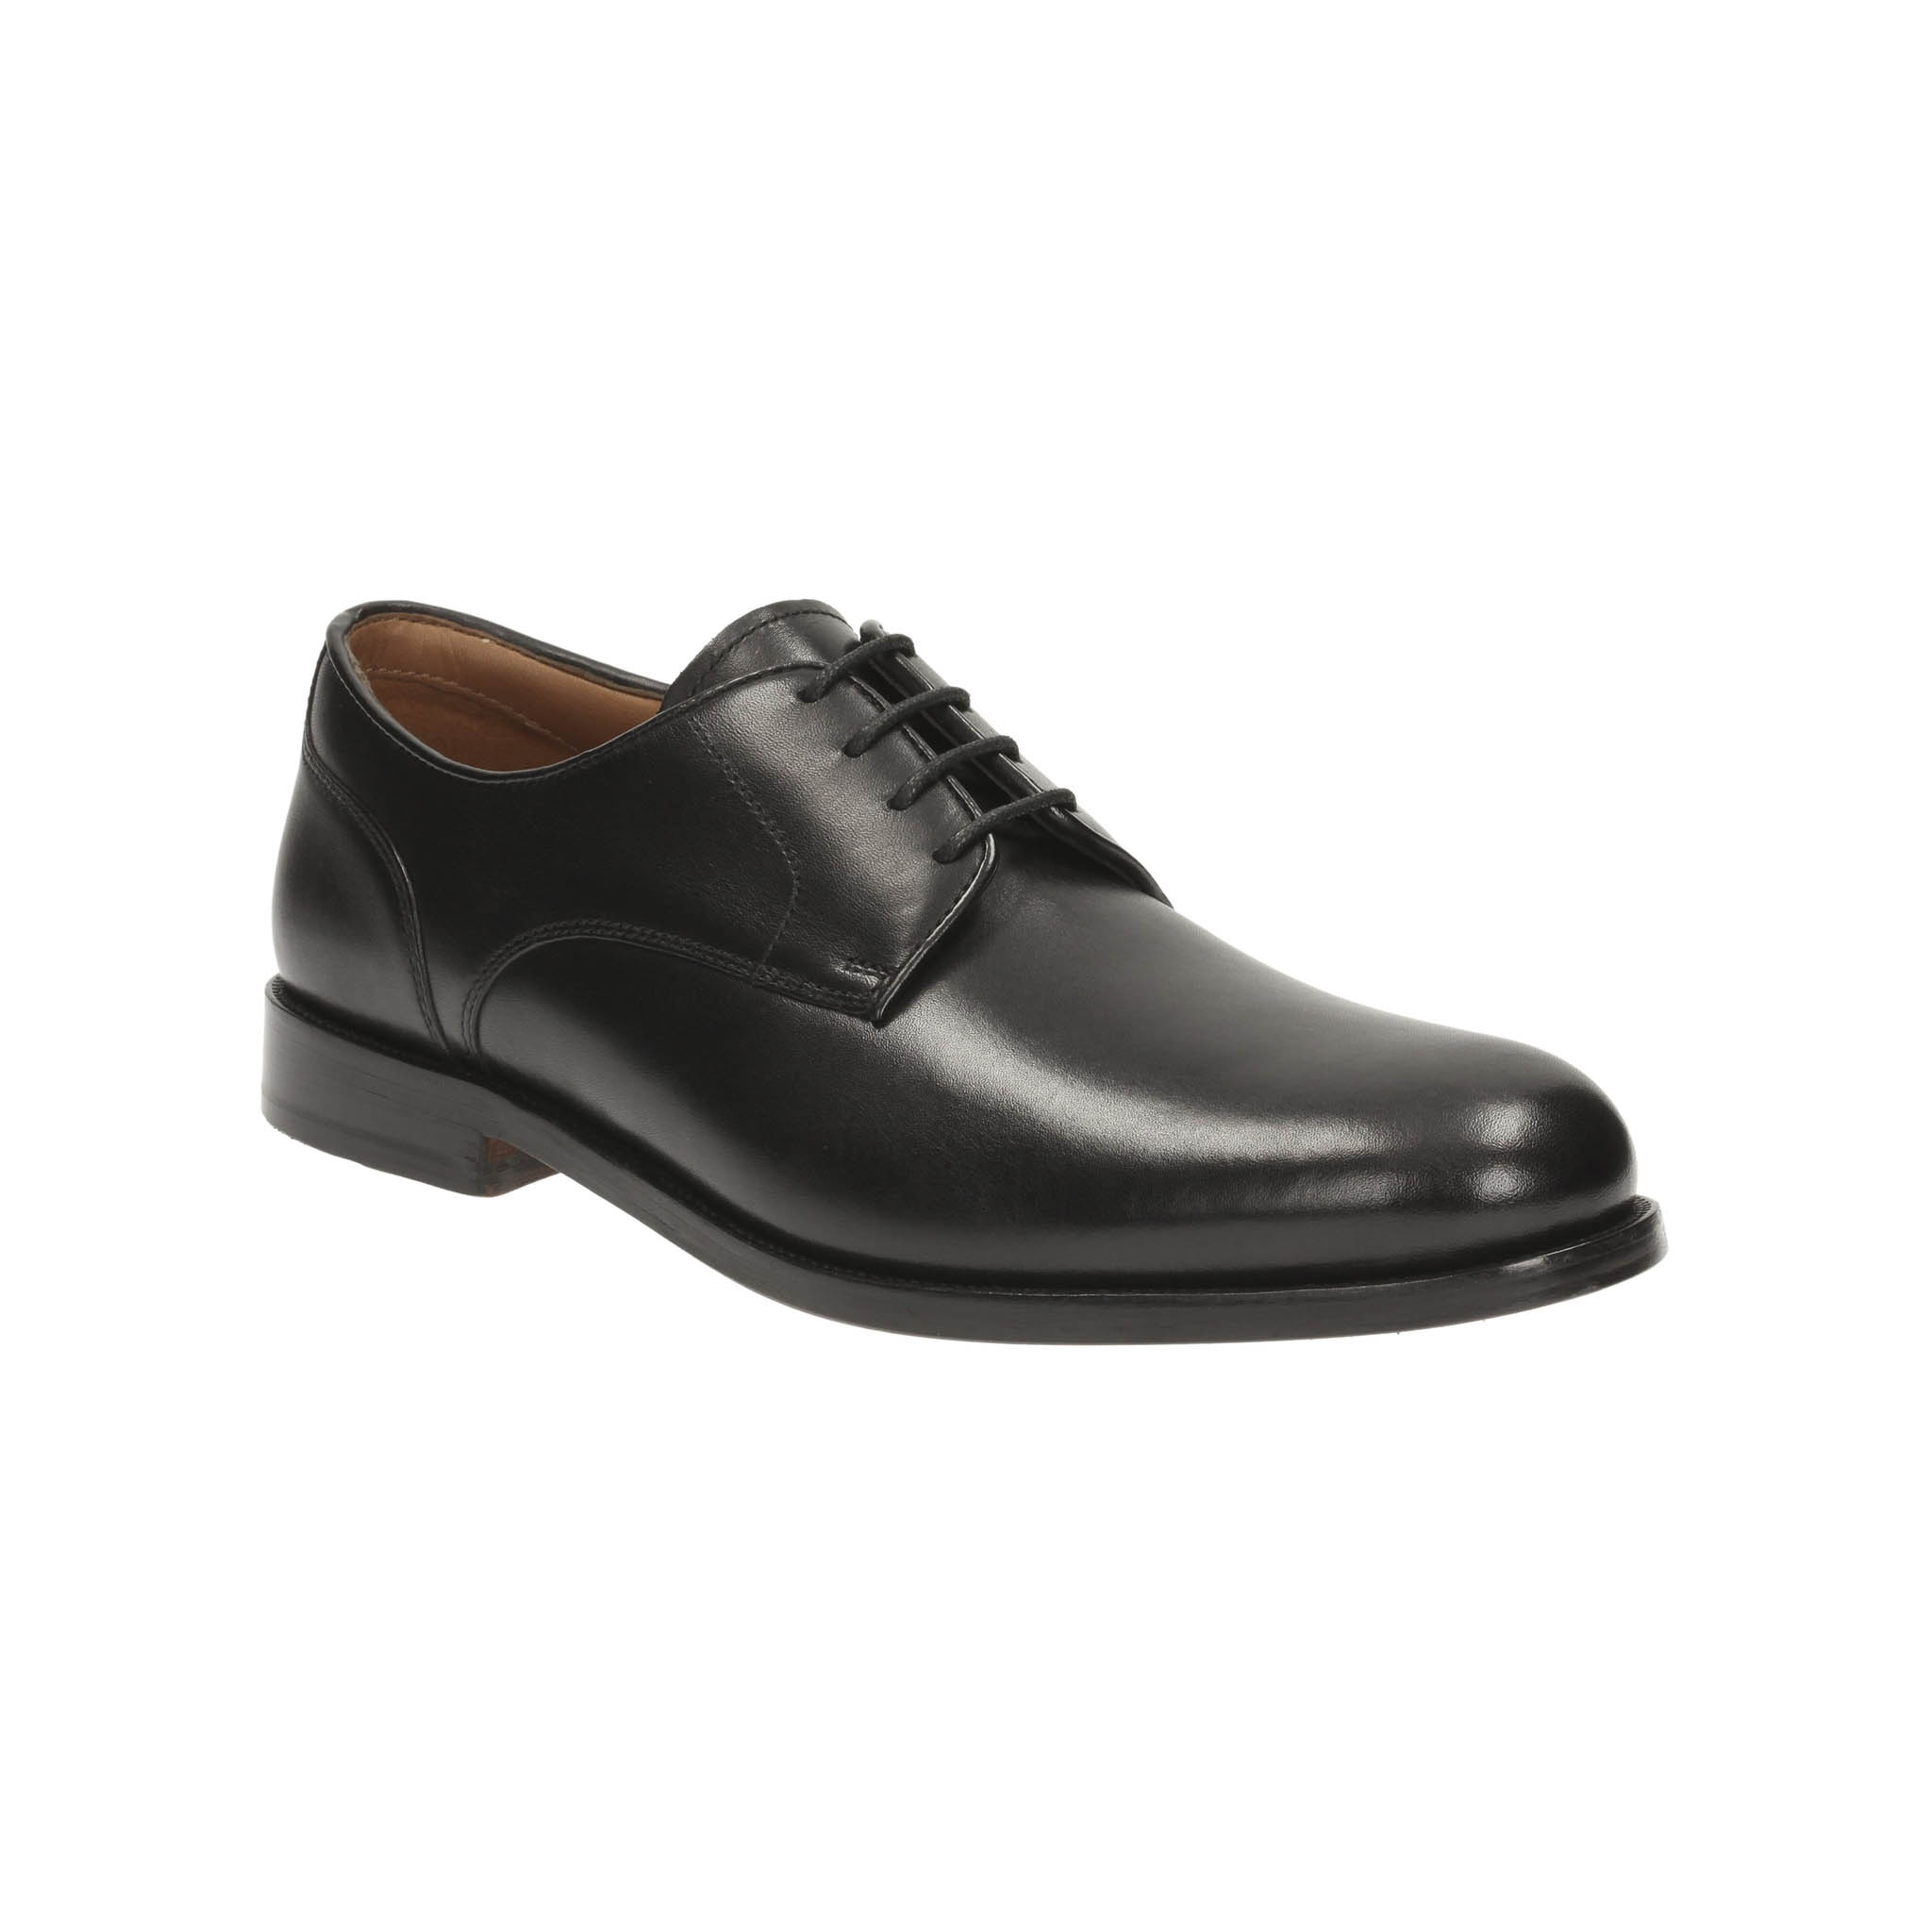 Clarks Shoes Cyprus